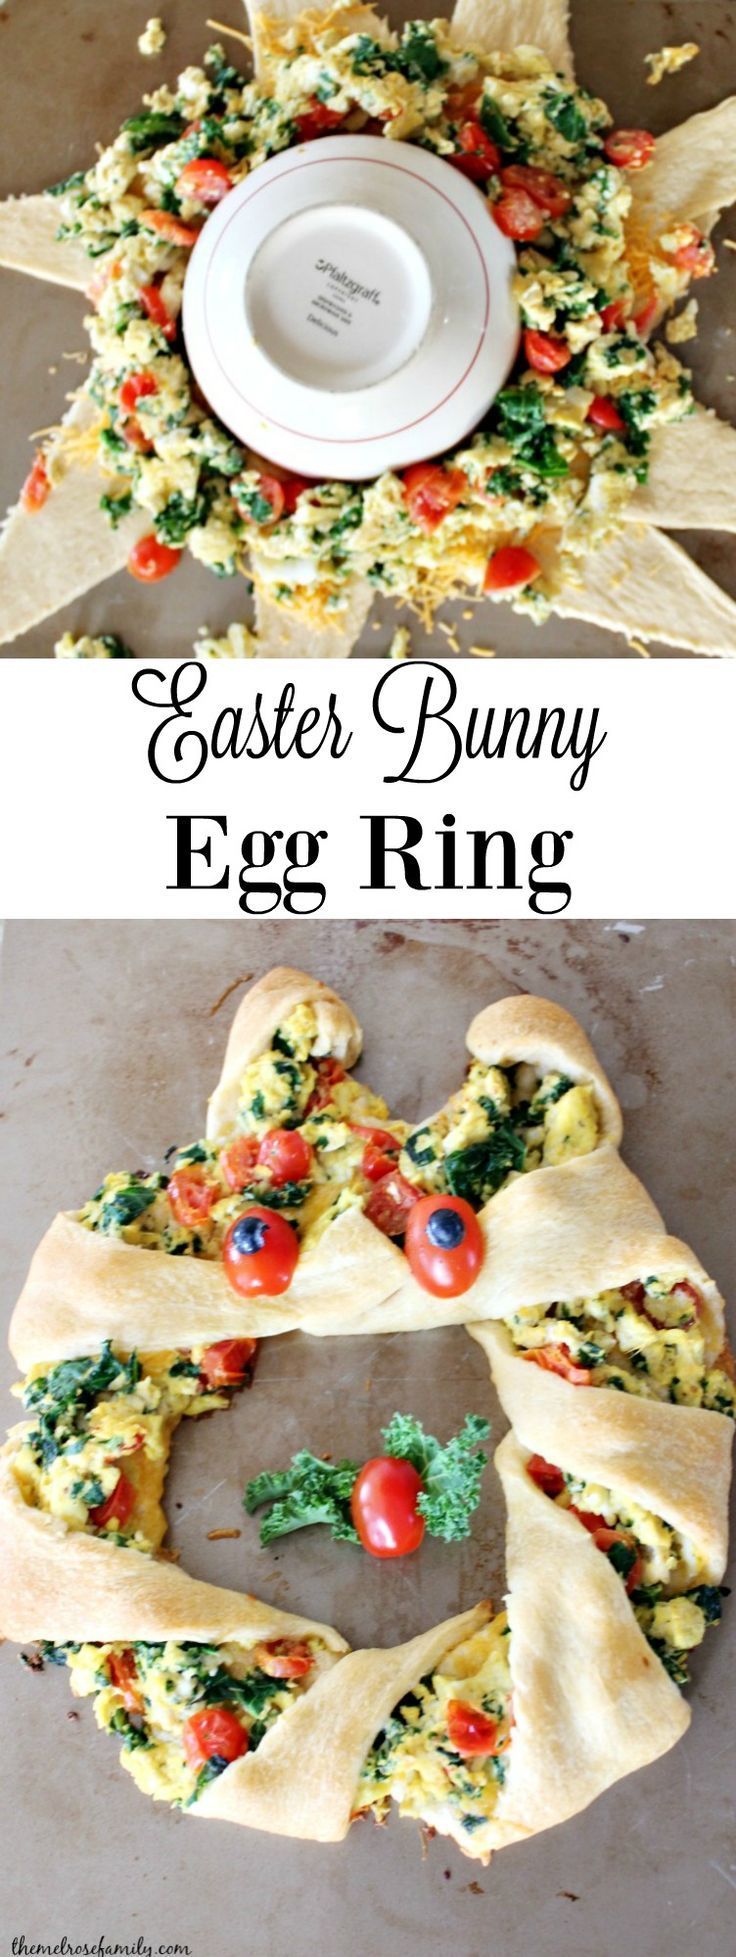 Easter Bunny Egg Ring is the perfect breakfast recipe to celebrate Spring with.